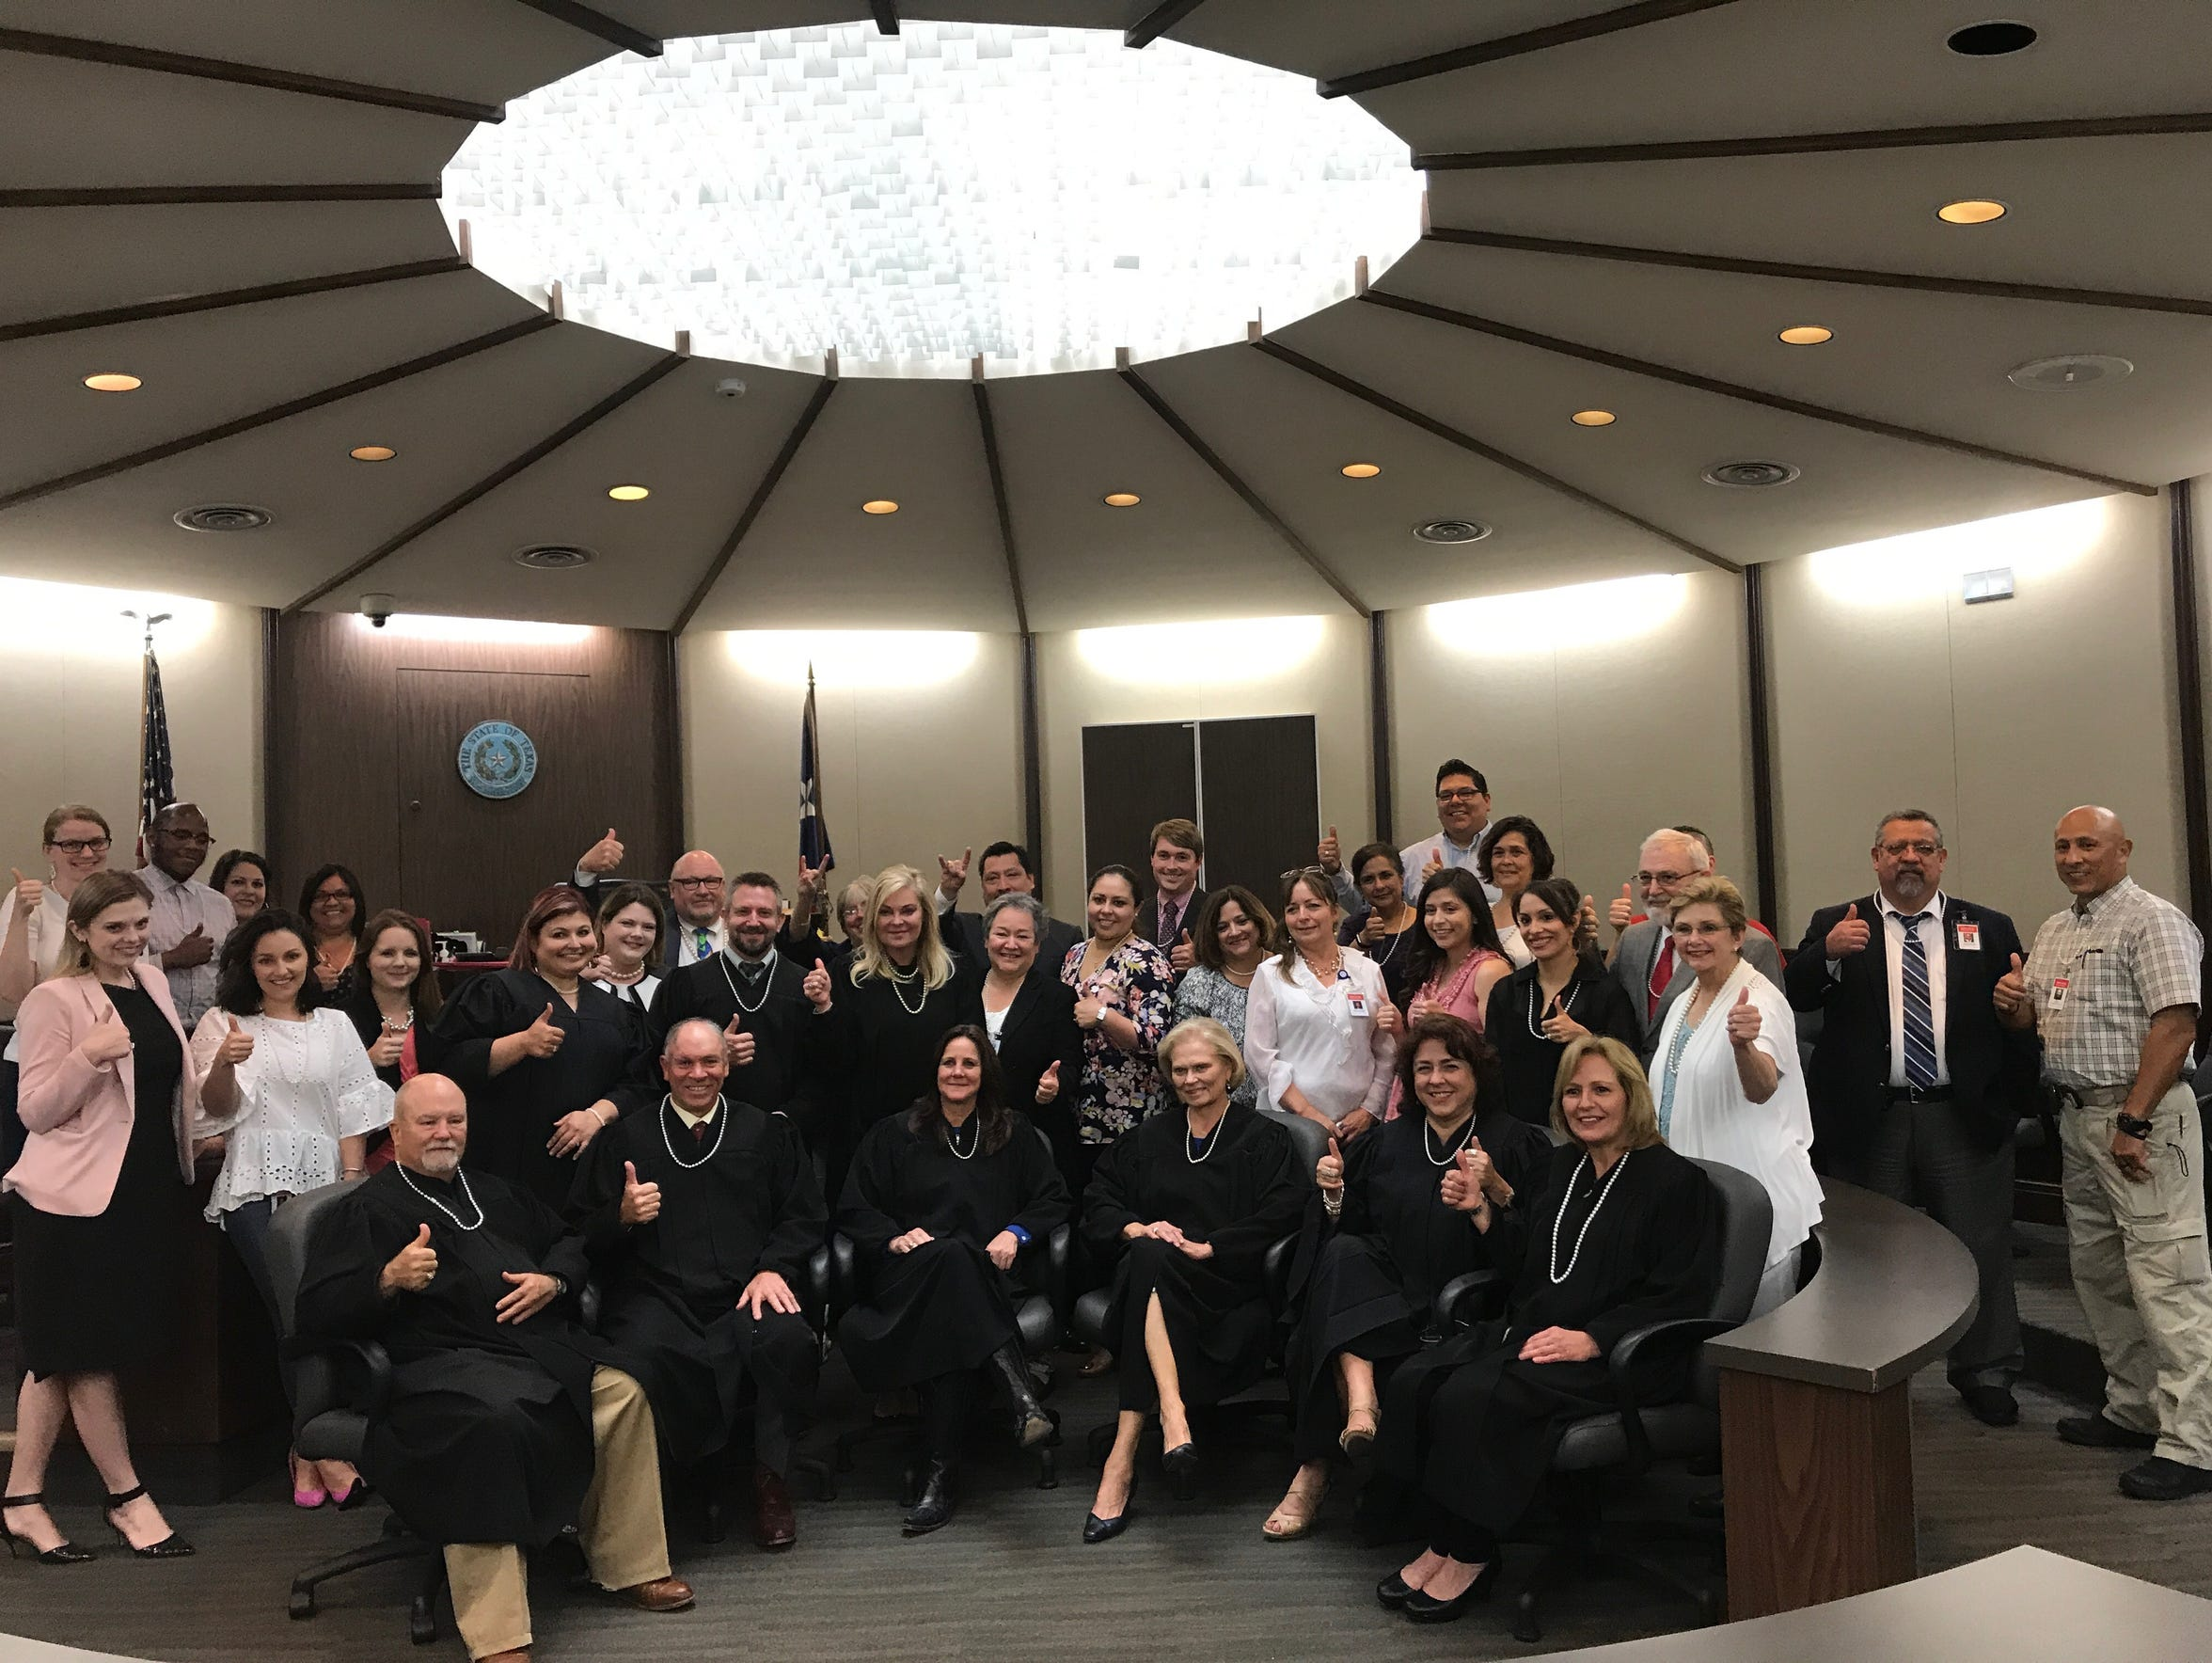 Judges and legal professionals wear pearls in honor